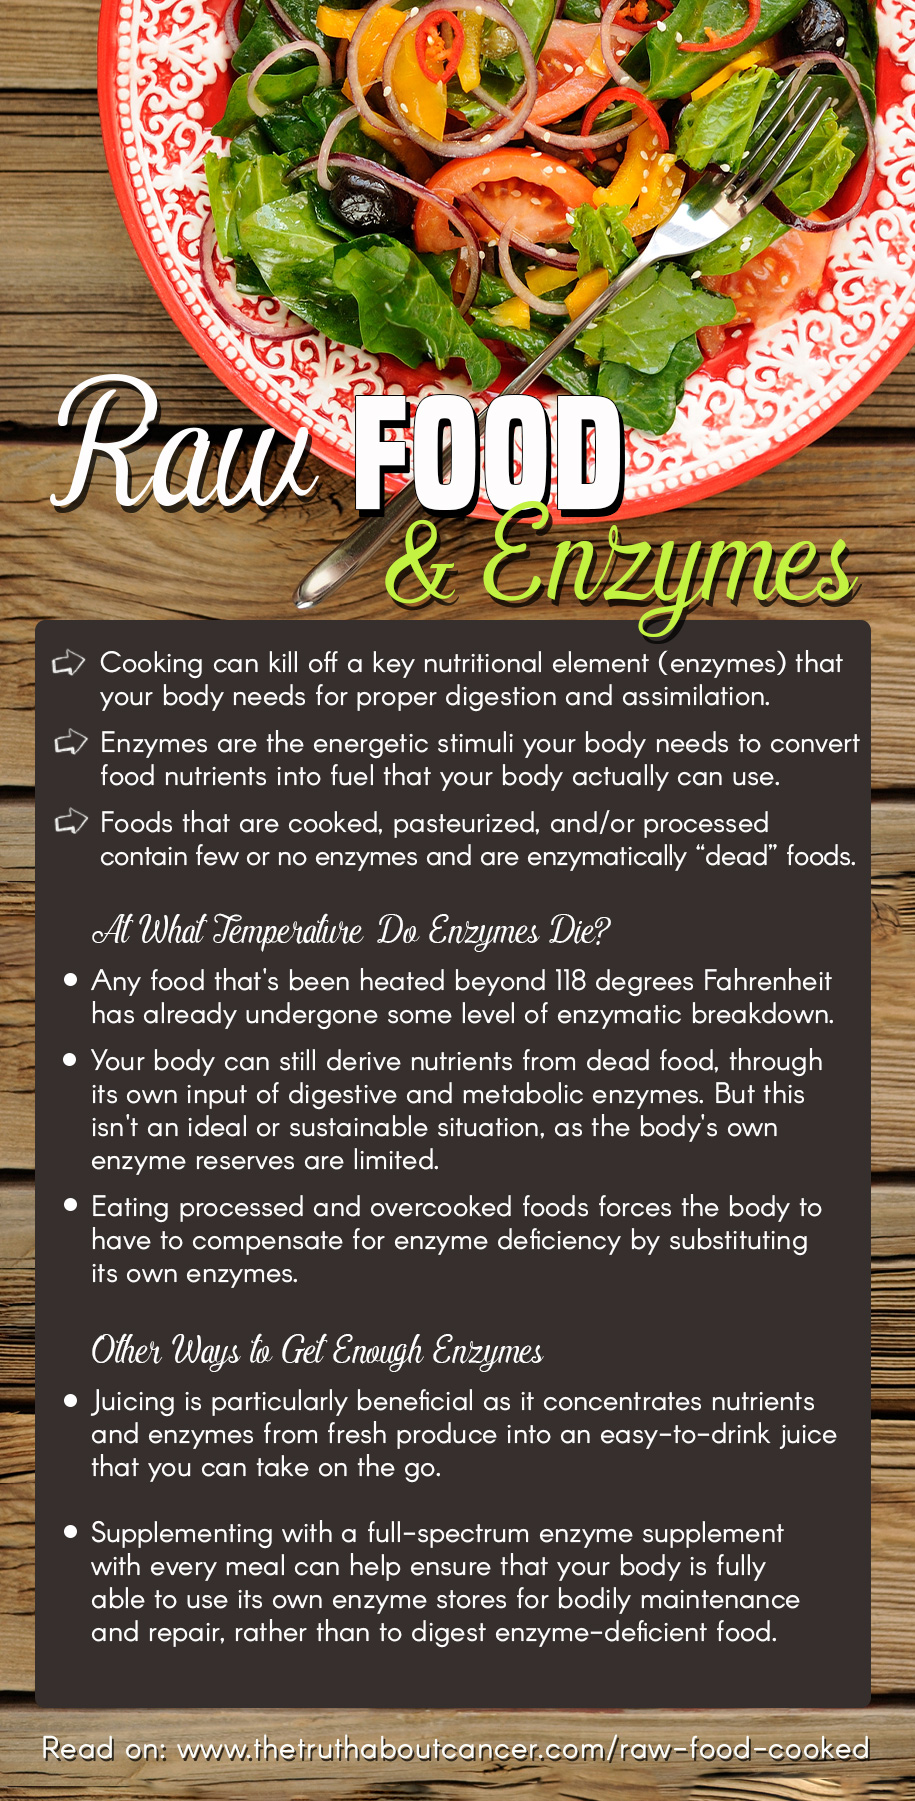 """Raw Food vs Cooked: Is What's on That Plate """"Dead"""" or """"Alive""""?"""